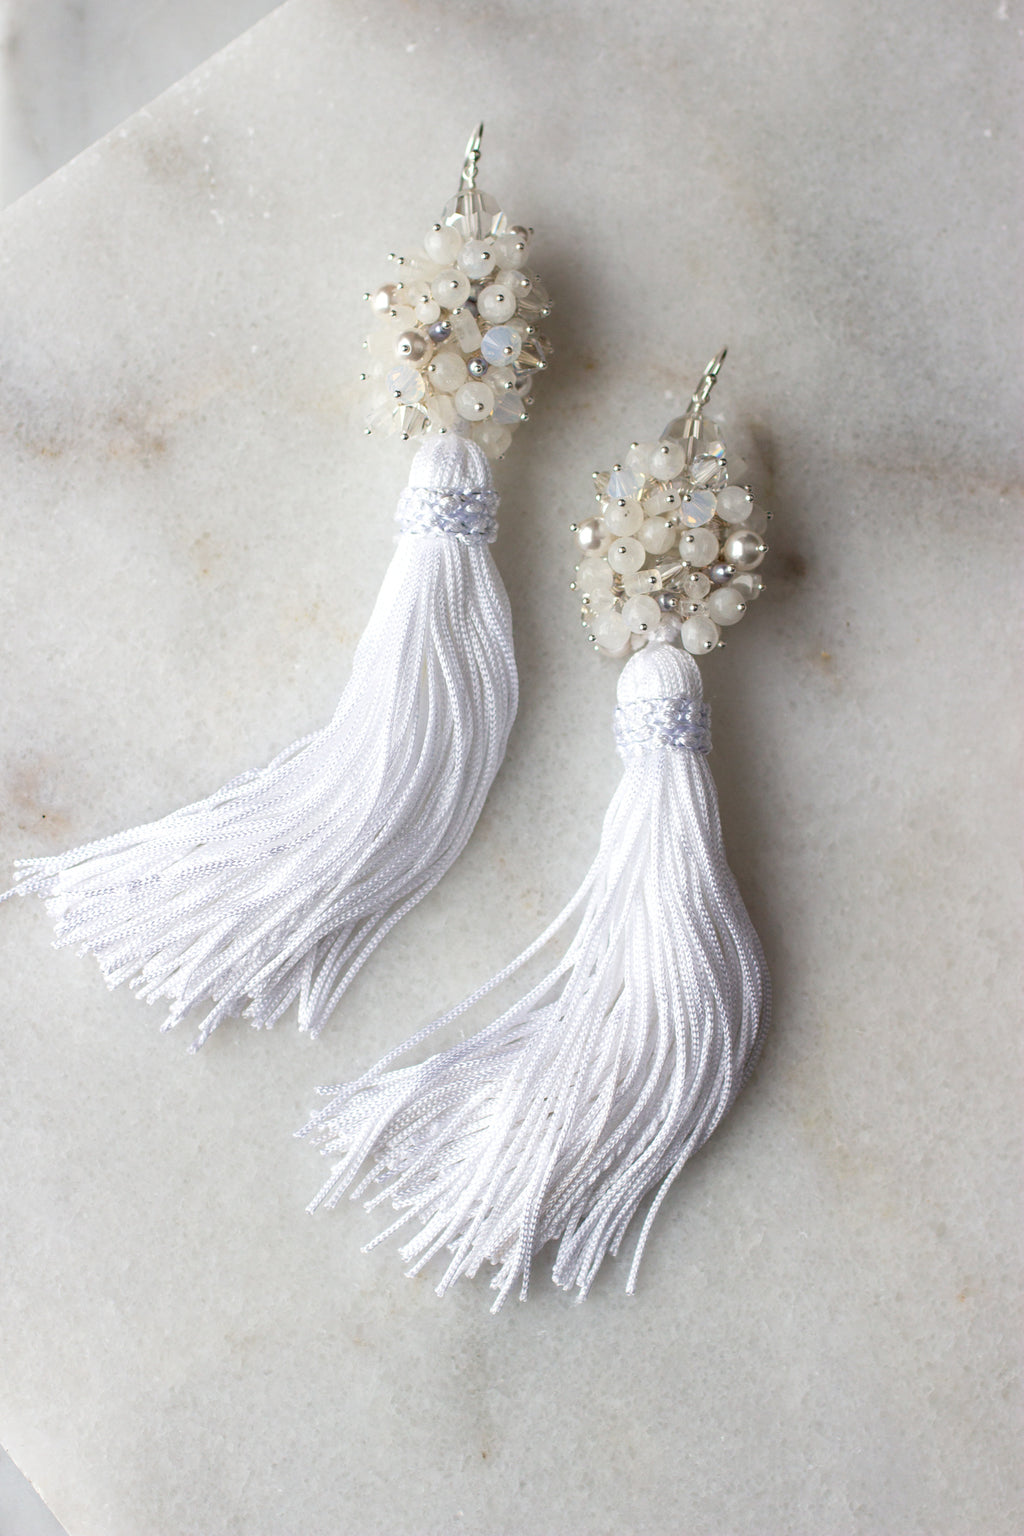 Luxe Tassel Earrings in Moonlight - Christine Elizabeth Jewelry